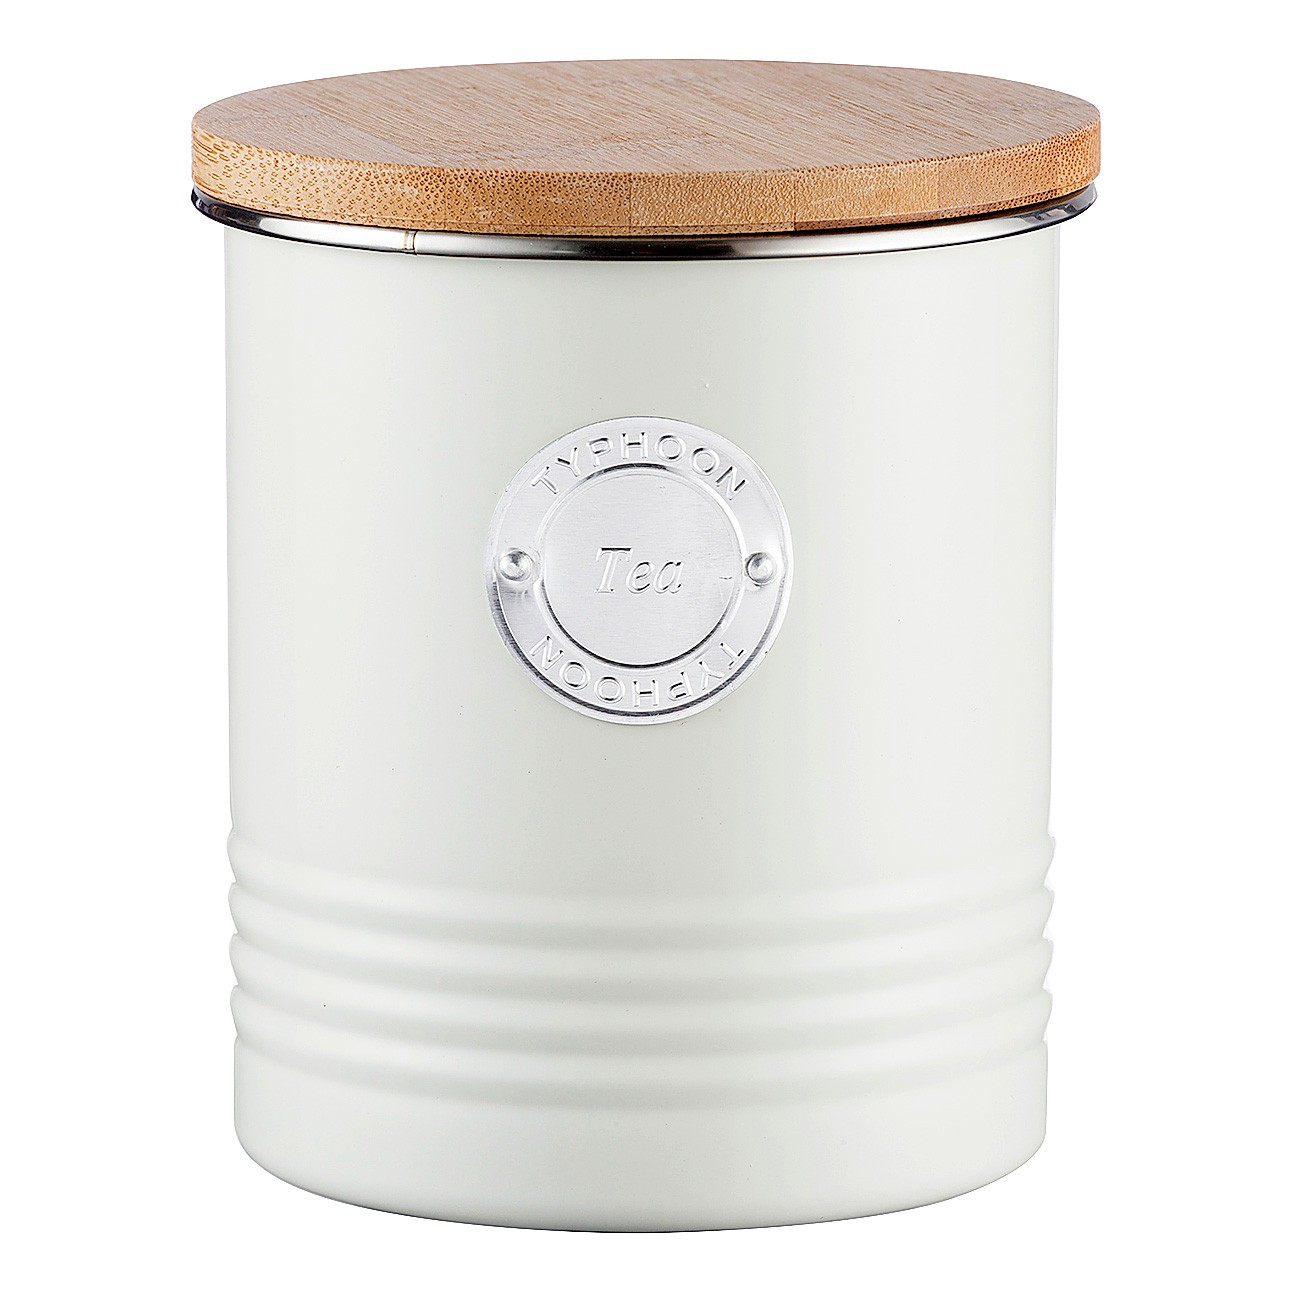 Typhoon Living Tea Canister, 1 Litre, Cream